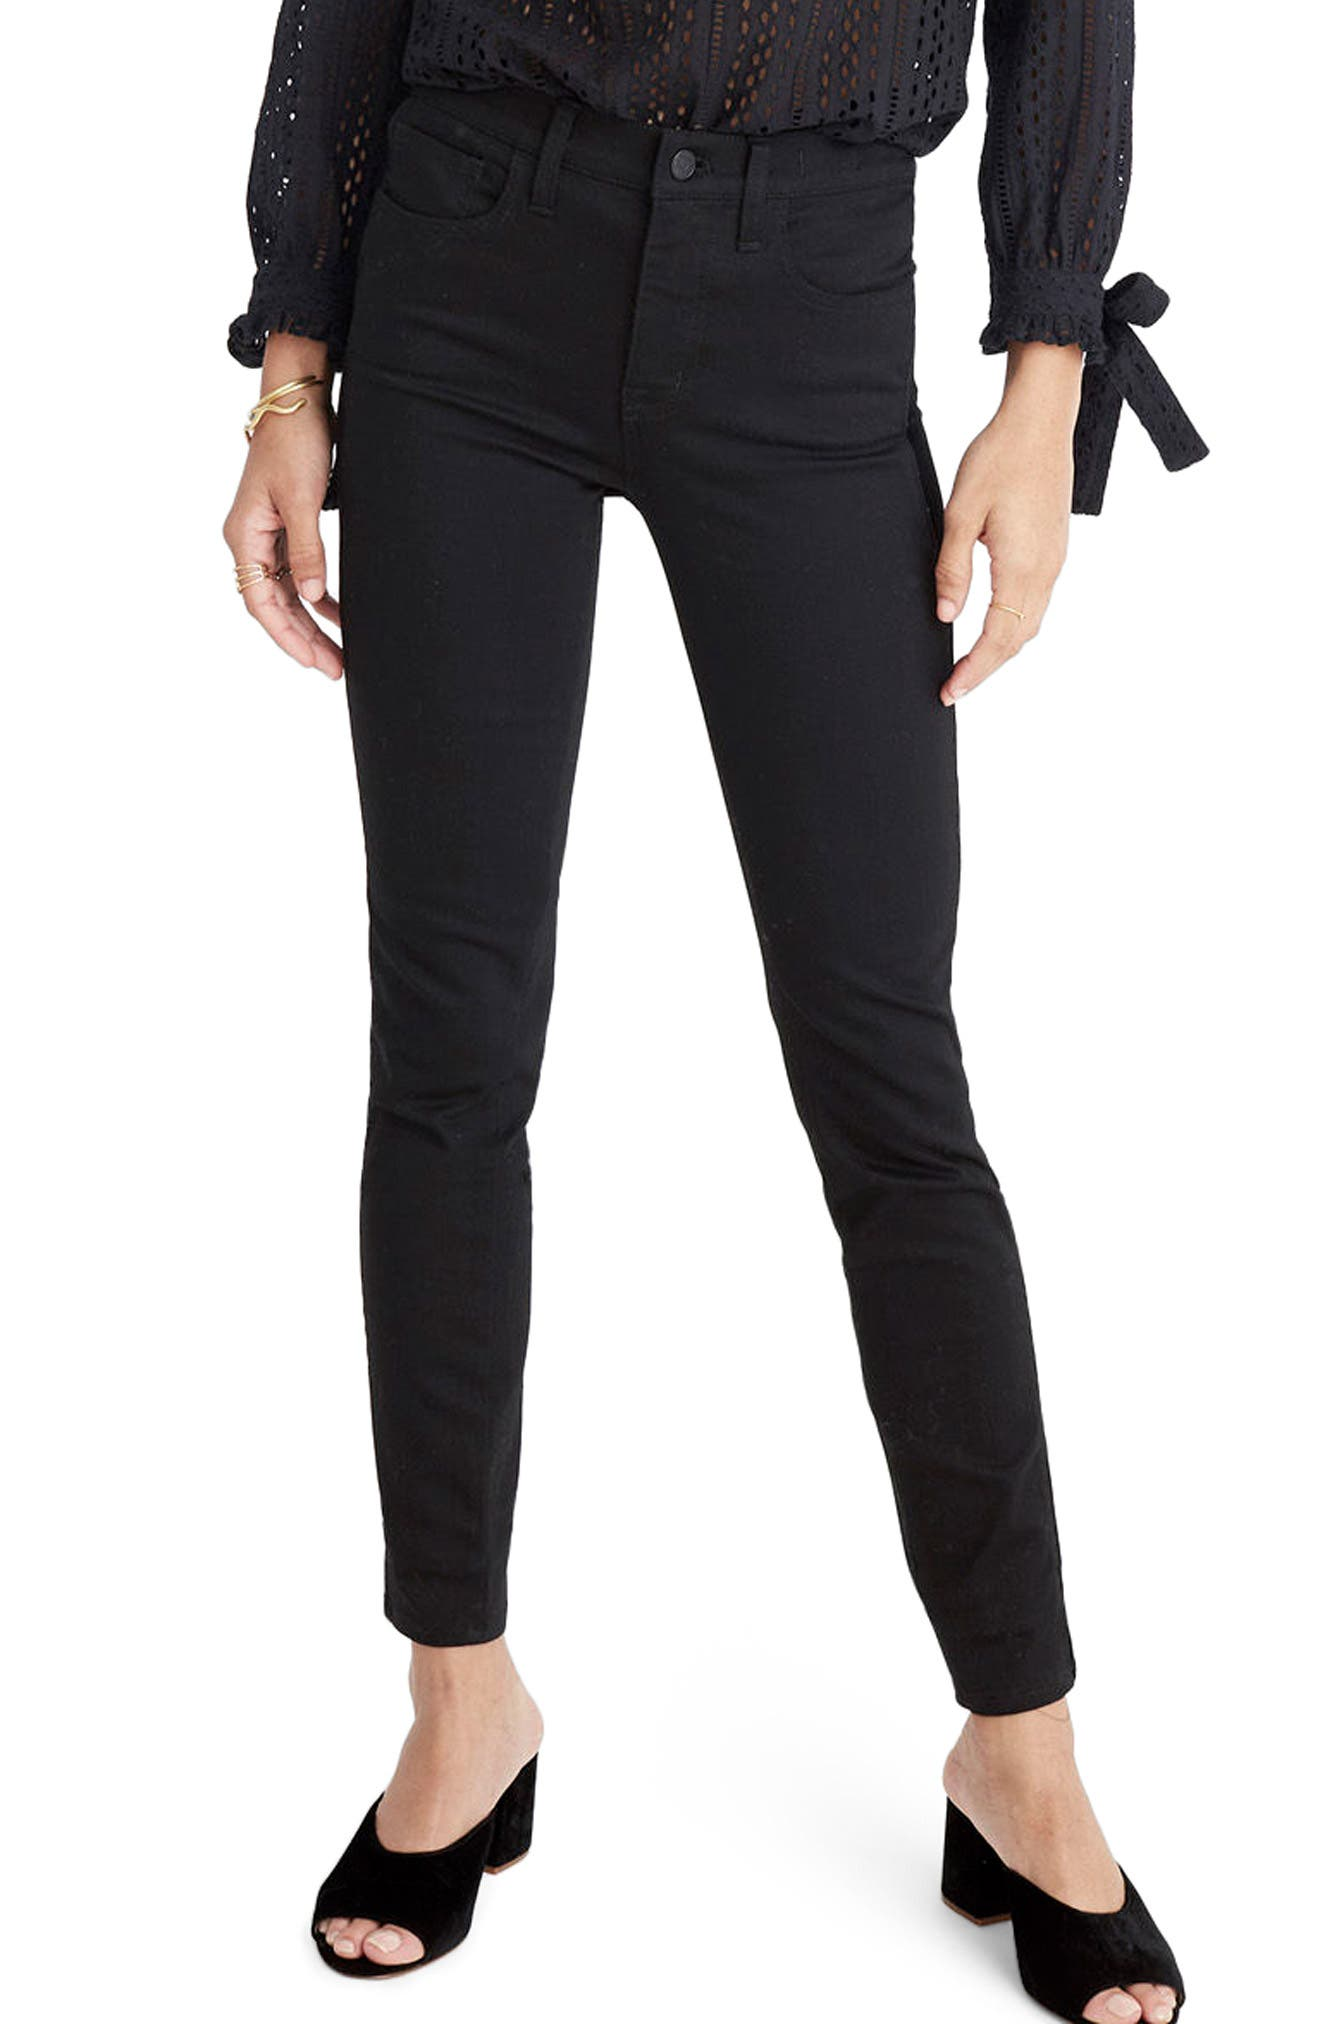 9-Inch High Waist Tuxedo Stripe Skinny Jeans,                         Main,                         color, 009